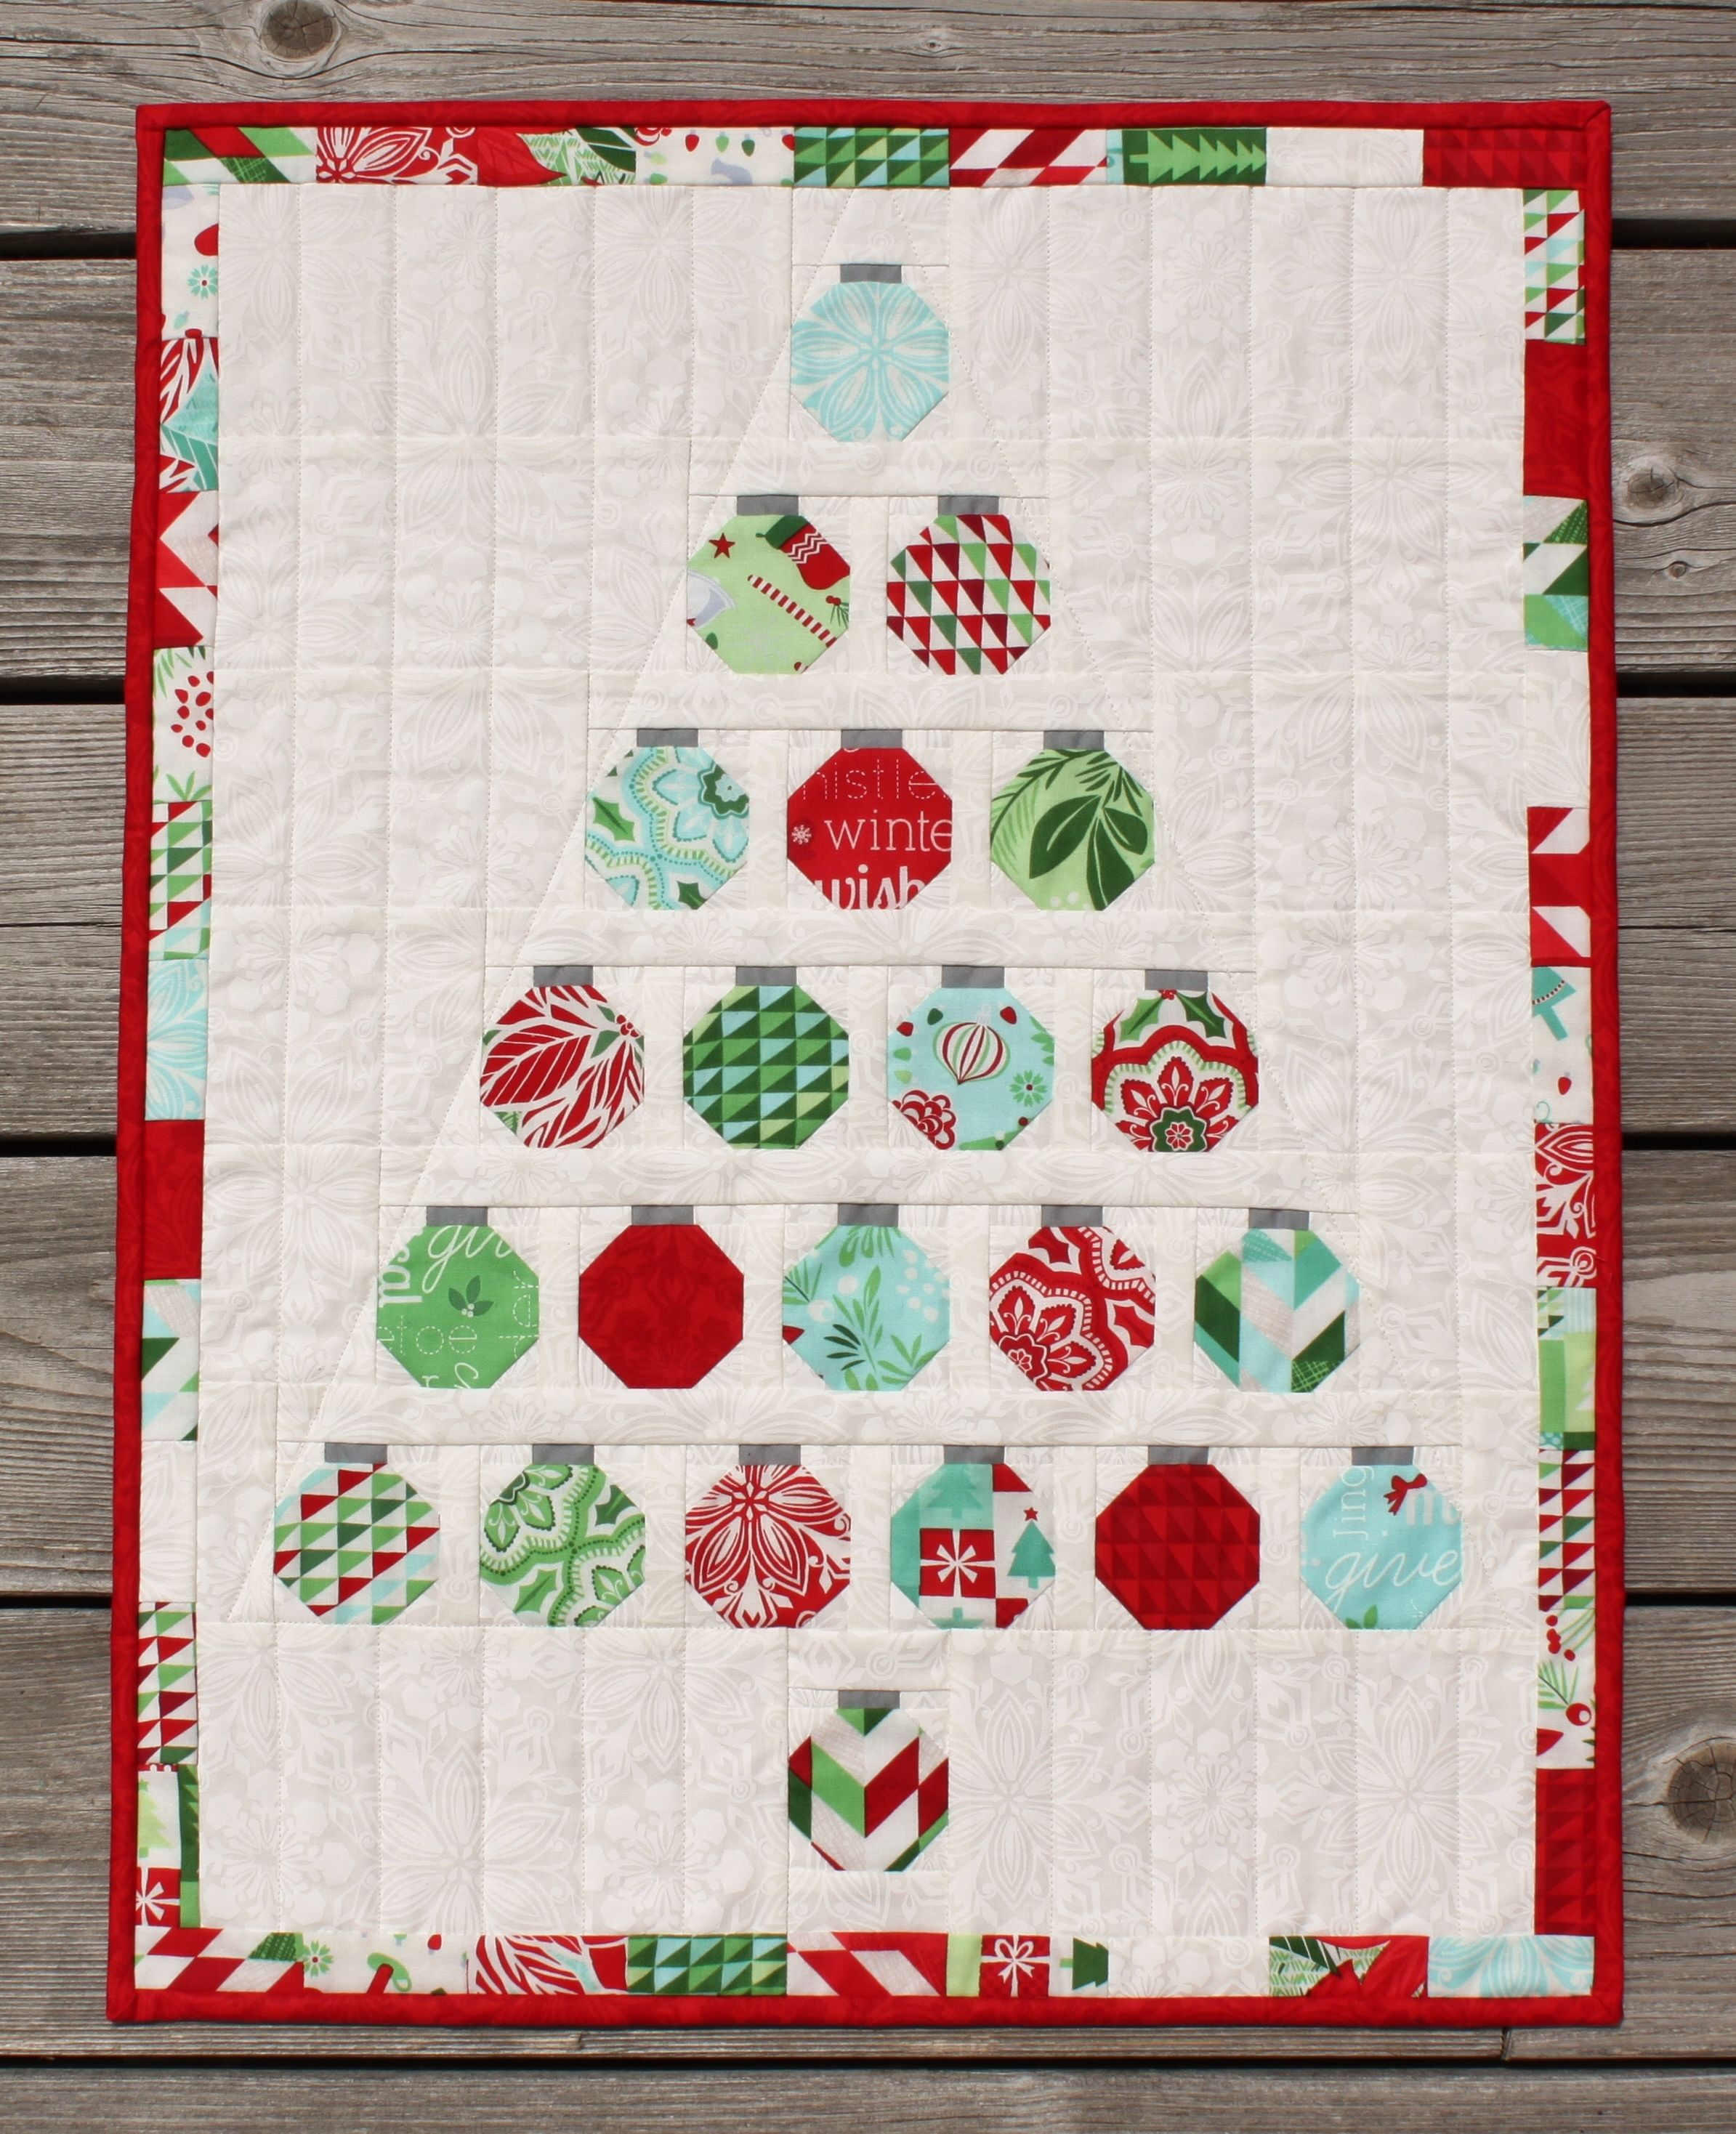 Christmas Quilt Patterns 2020 QuiltFabrication: FREE Christmas Tree Patterns in 2020 | Christmas